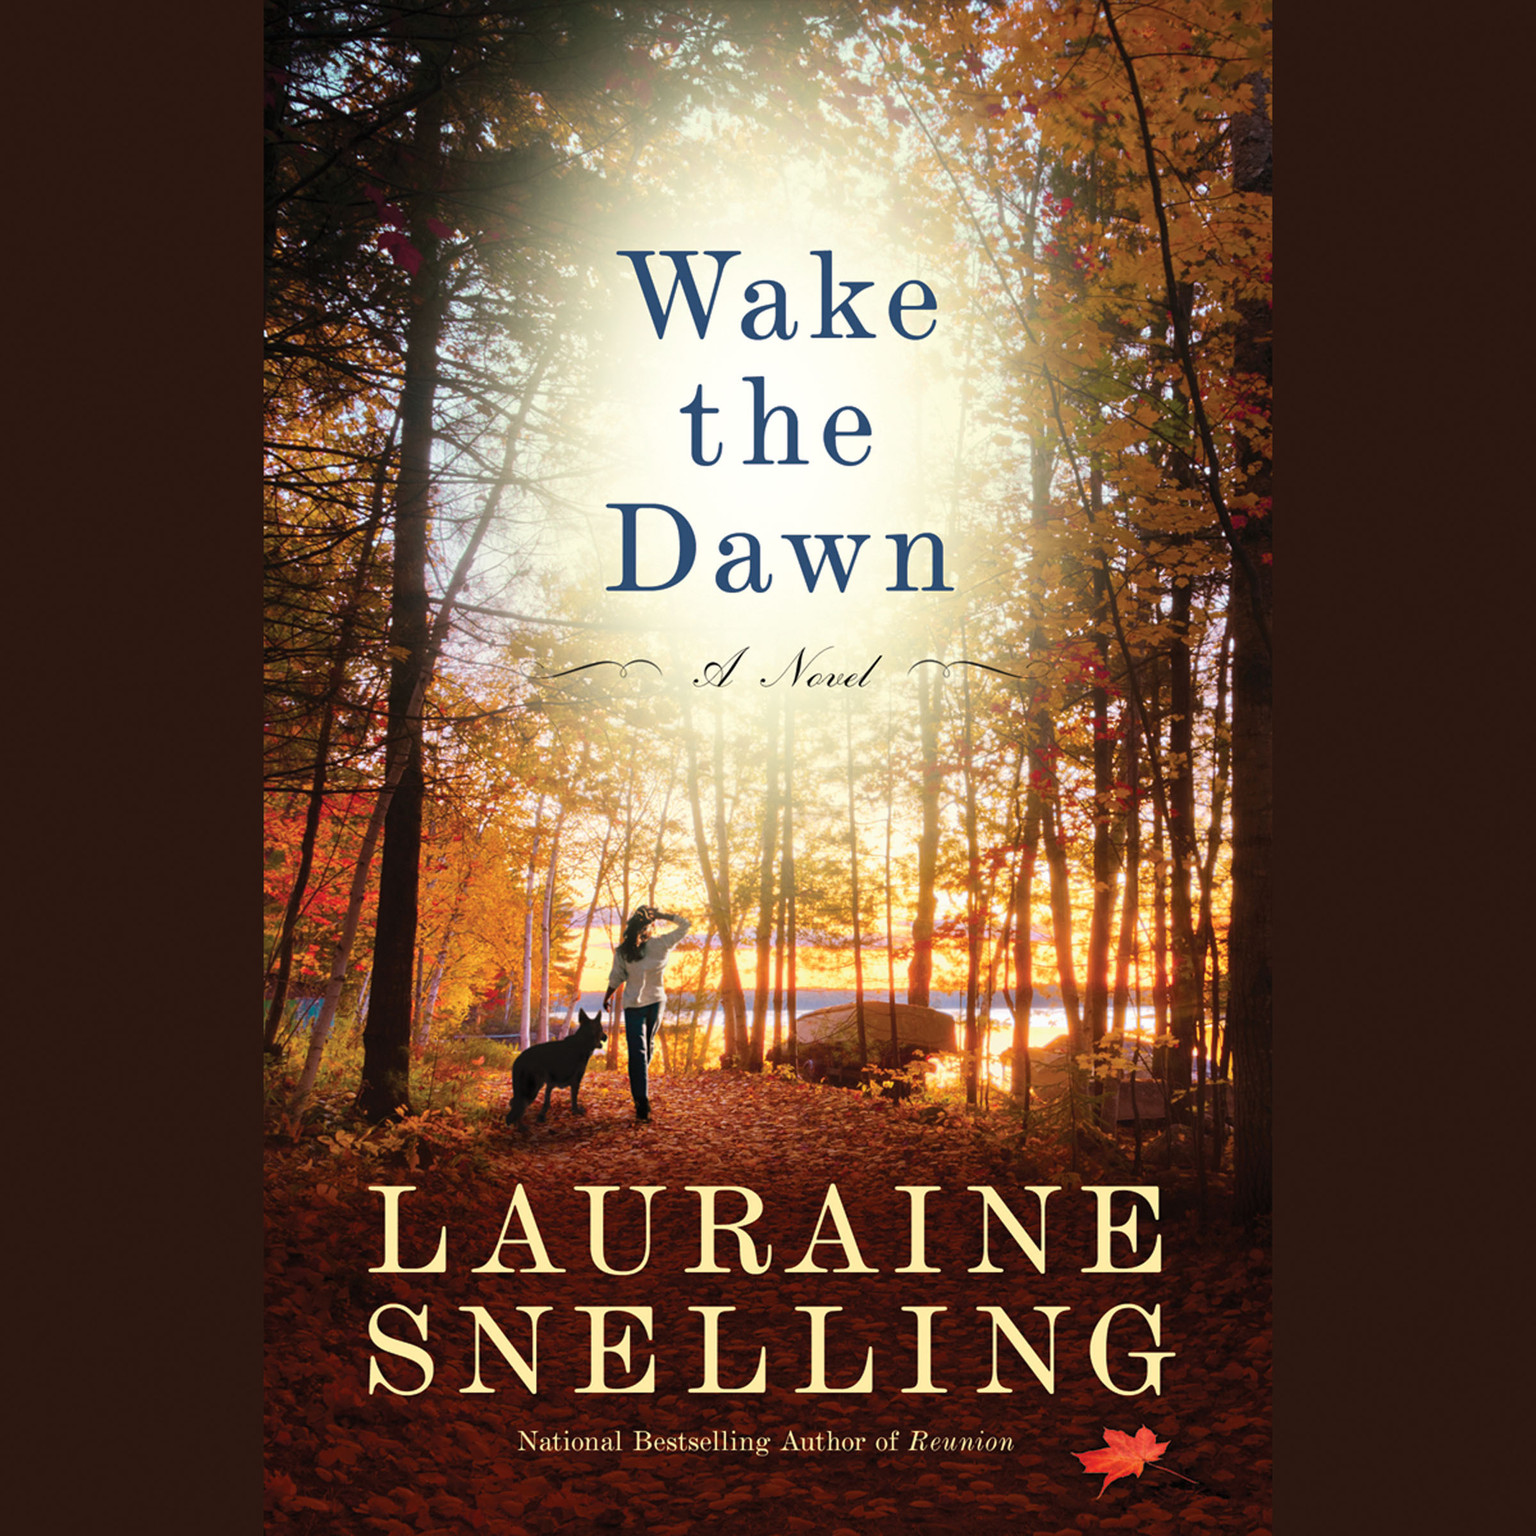 Printable Wake the Dawn: A Novel Audiobook Cover Art